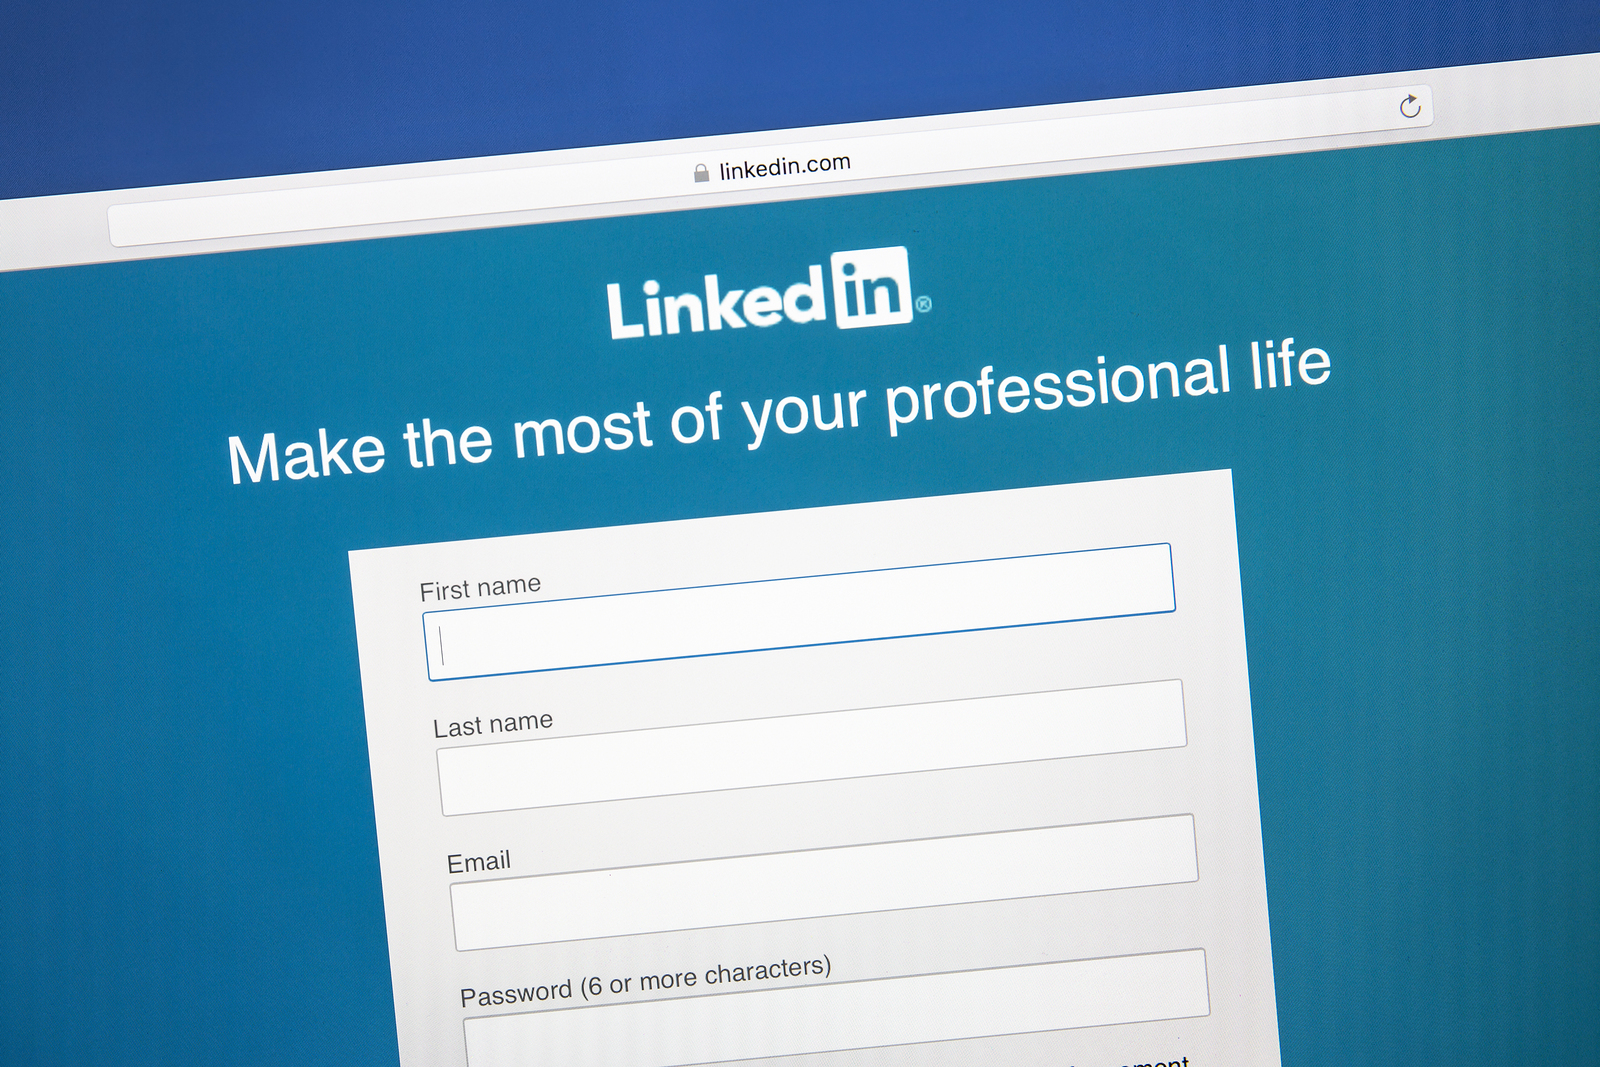 7 Sensational LinkedIn Profile Tips for Job Seekers